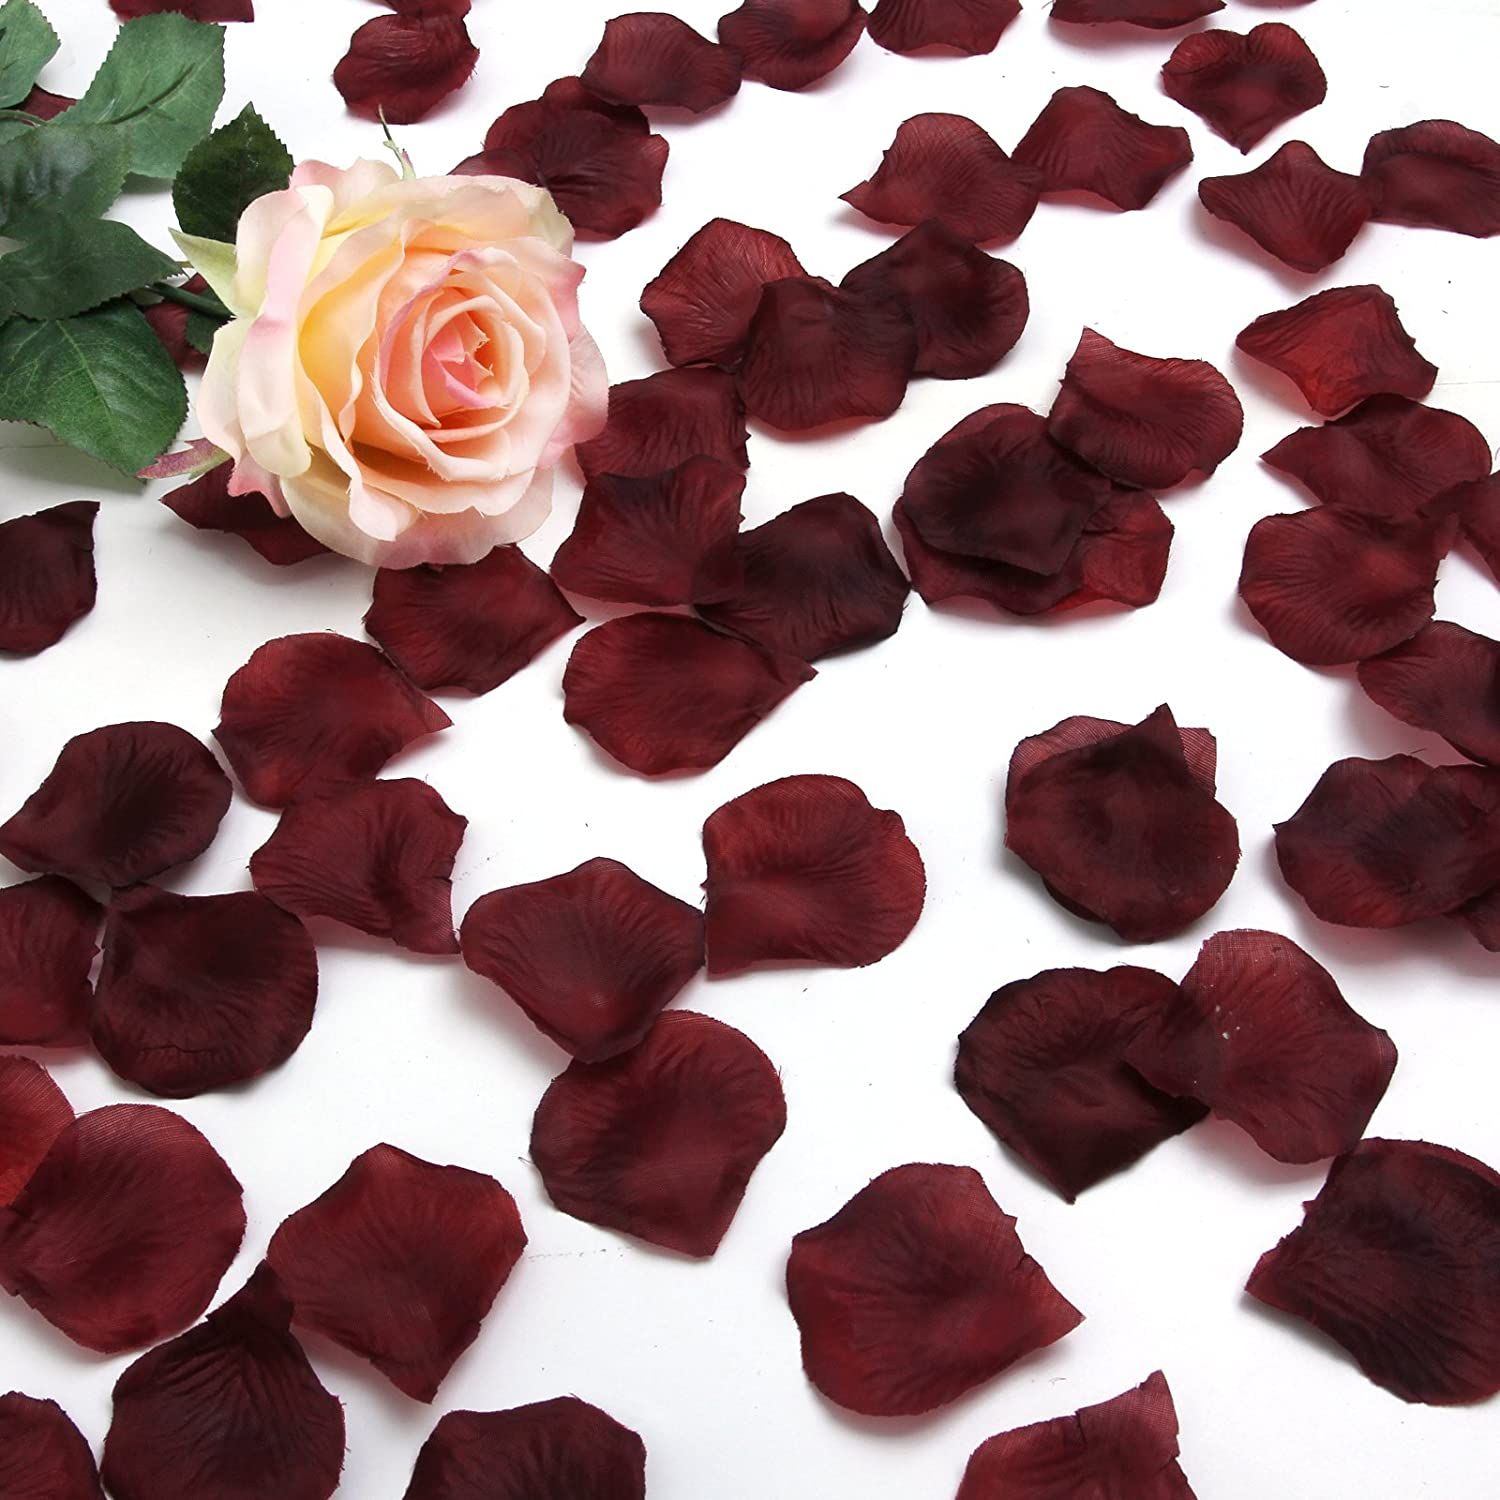 Best Quality 1000 pcs Silk Rose Petals Wedding Party Decorations Flower Favors (burgundy) AEQW-WER-AW147845